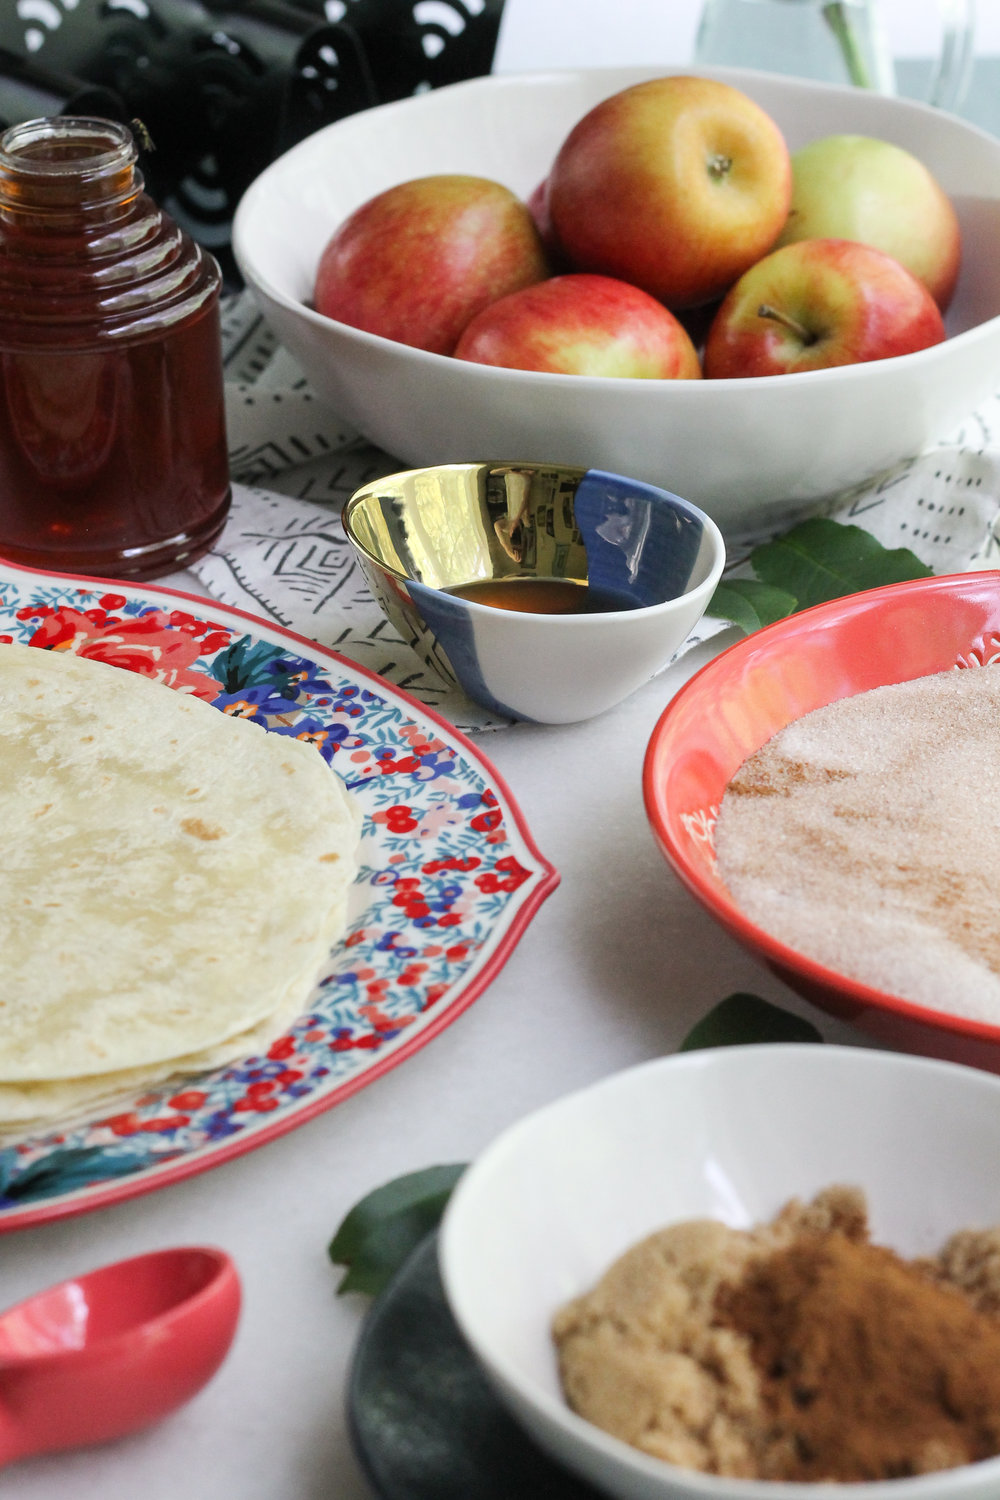 These Cinnamon Sugar Fried Apple Tacos are THE dessert of the summer. [ www.pedanticfoodie.com ]